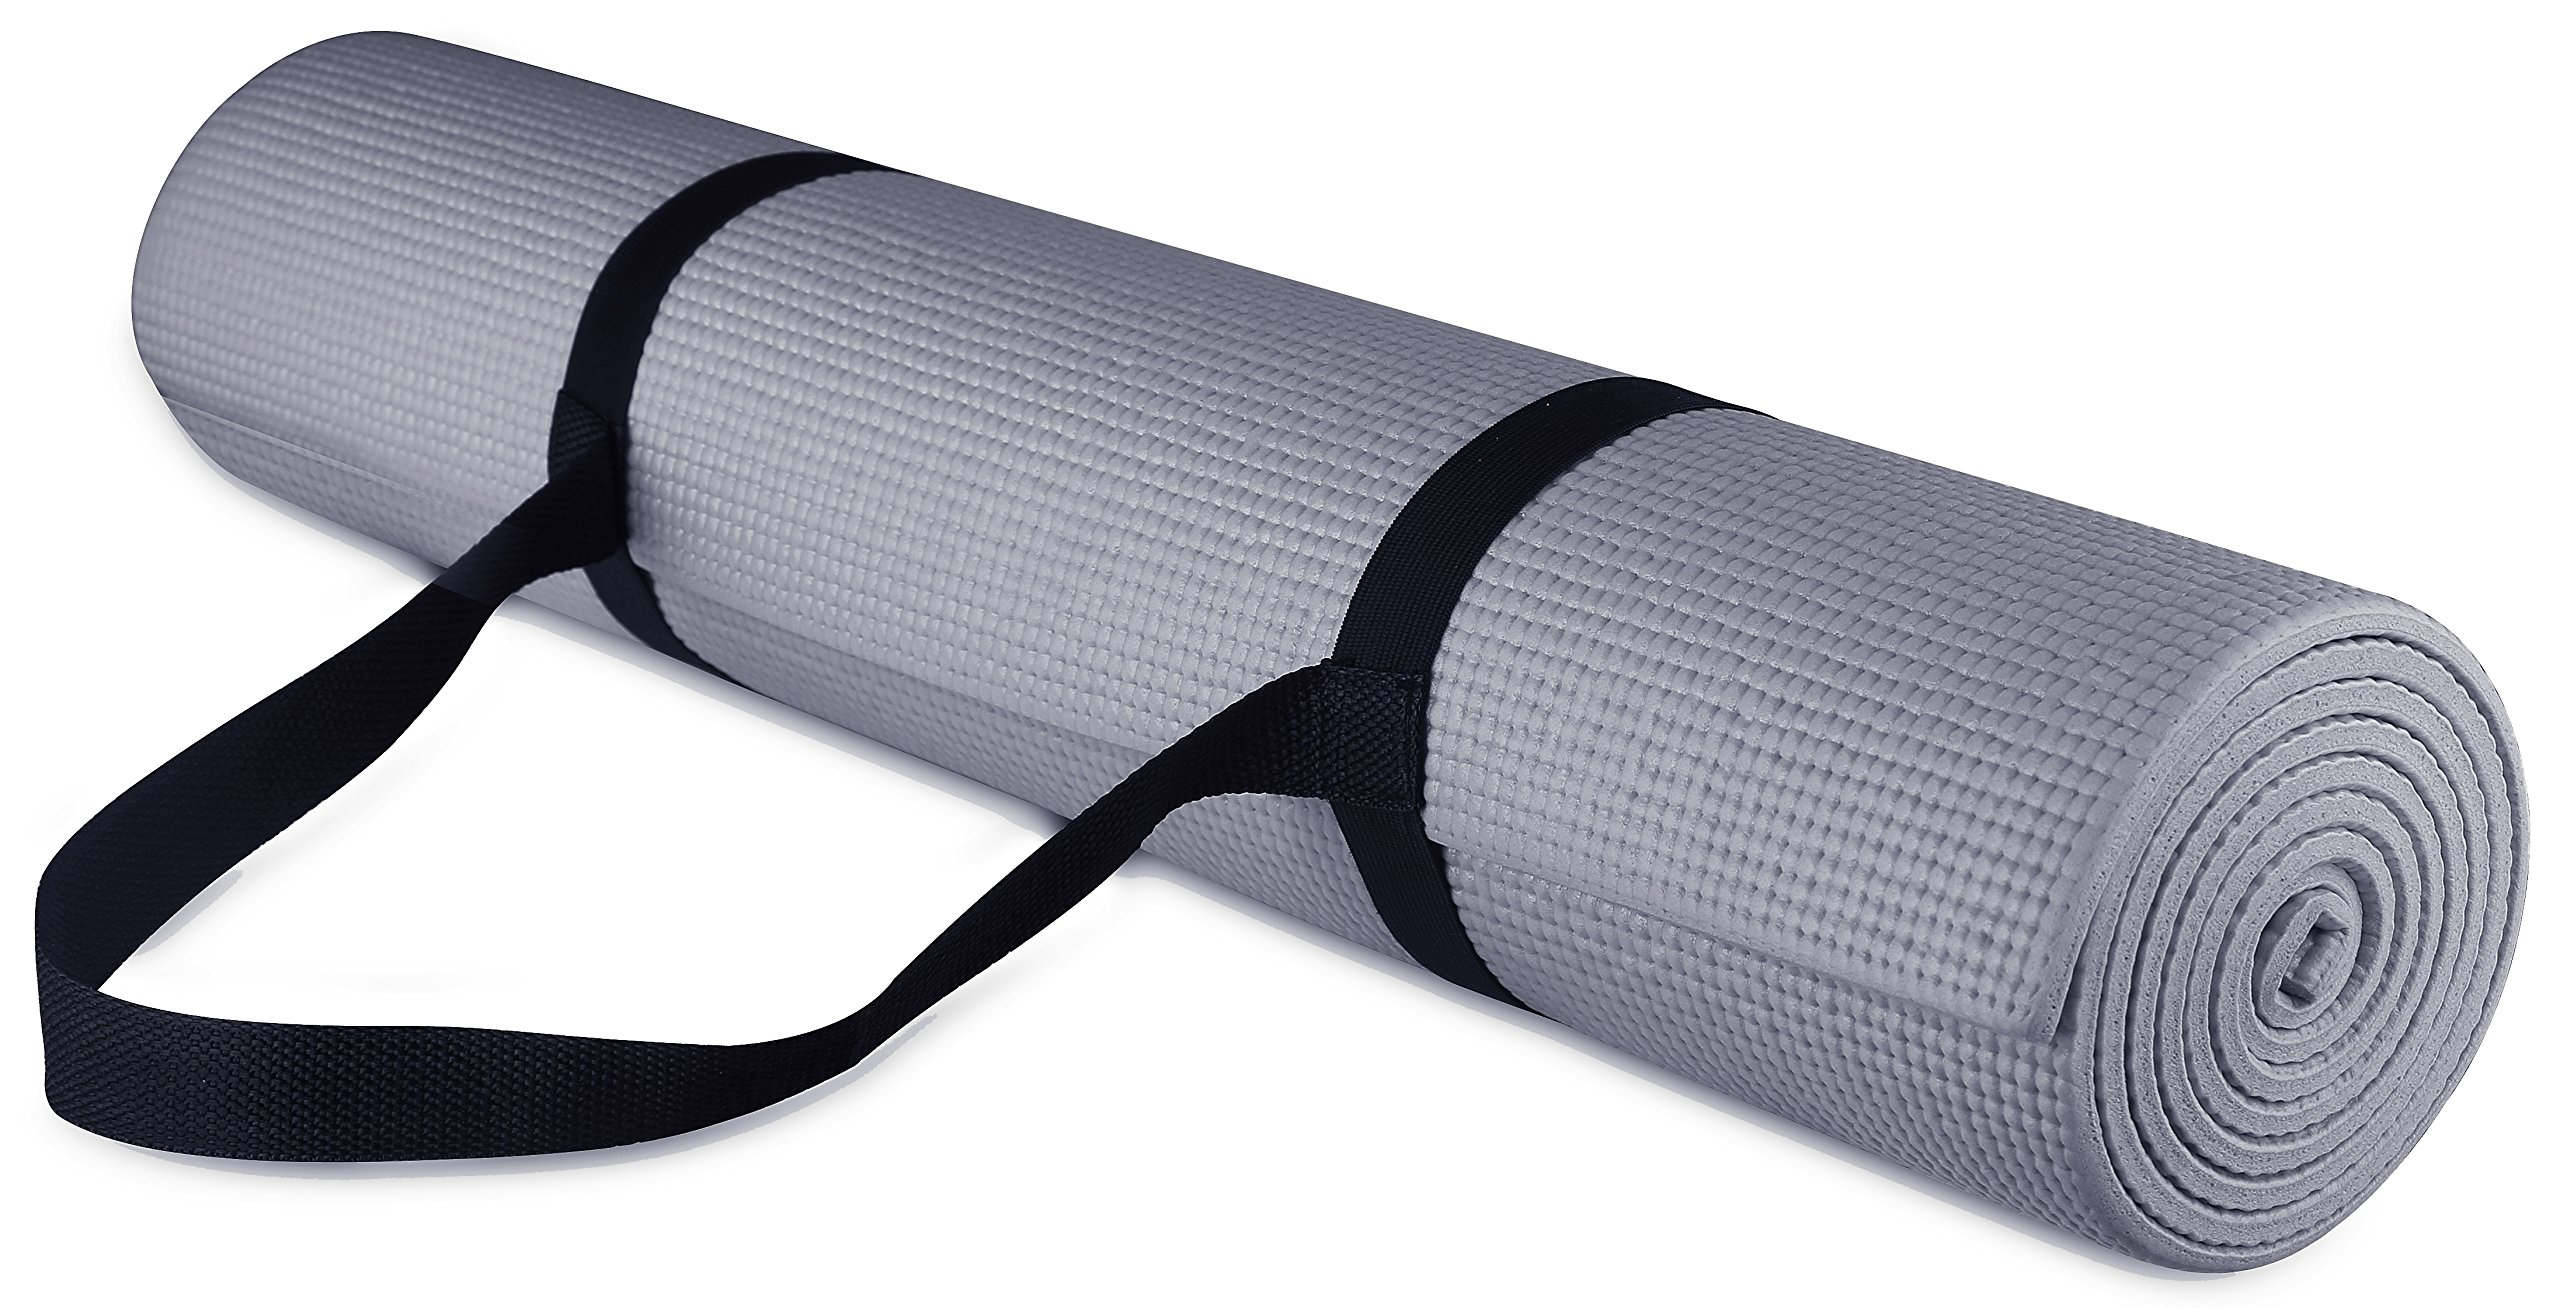 BalanceFrom GoYoga All Purpose High Density Non-Slip Exercise Yoga Mat with Carrying Strap, 1/4'', Grey by BalanceFrom